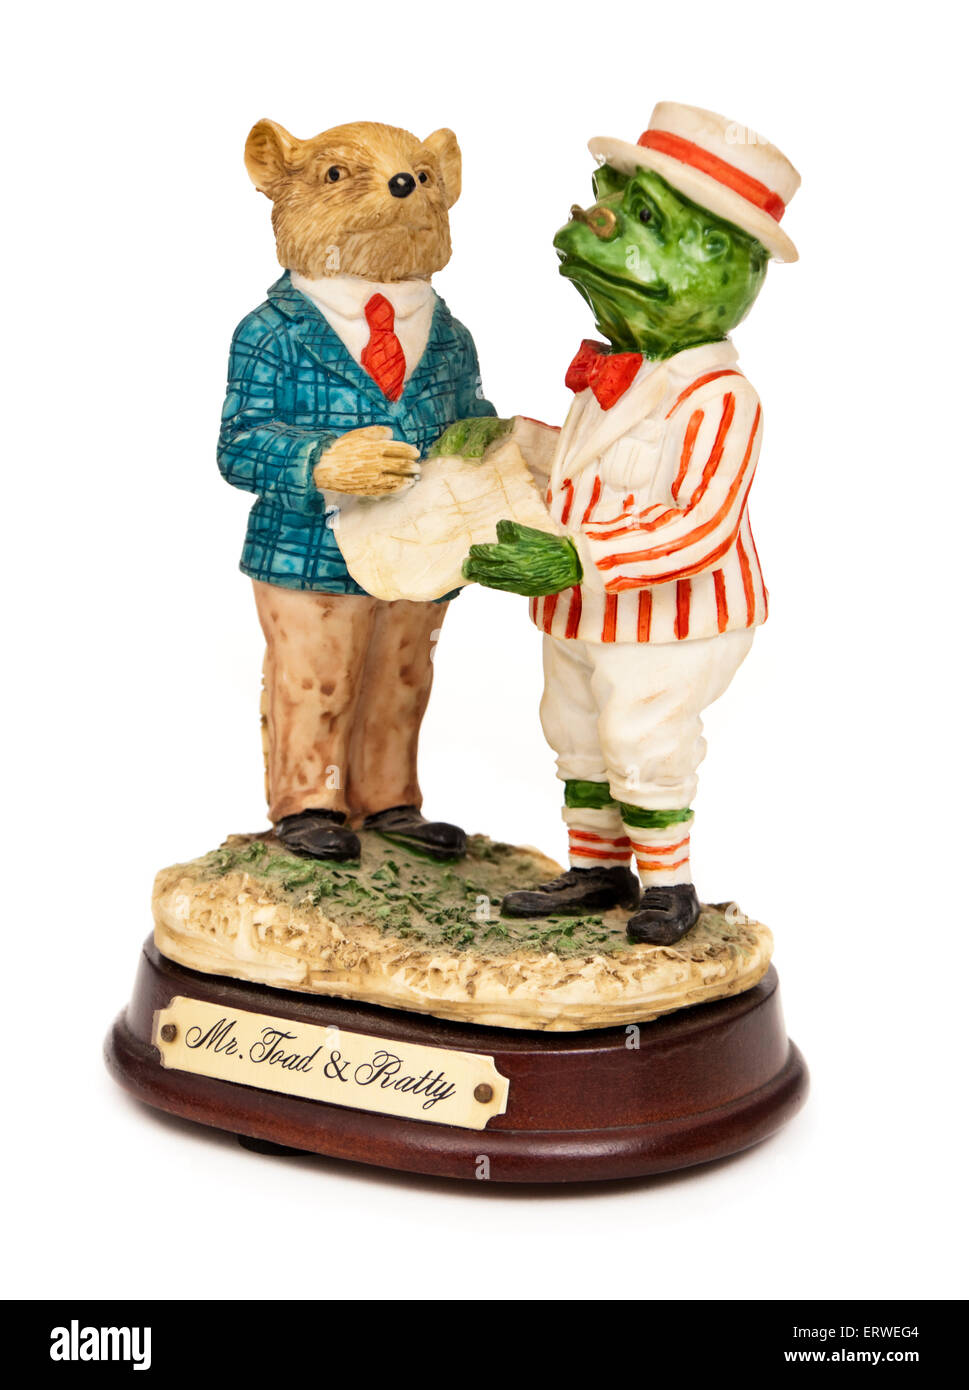 Wind in the willows ornaments - Handpainted Ornament Featuring Mr Toad And Ratty From The Popular Children S Novel Wind In The Willows By Kenneth Grahame